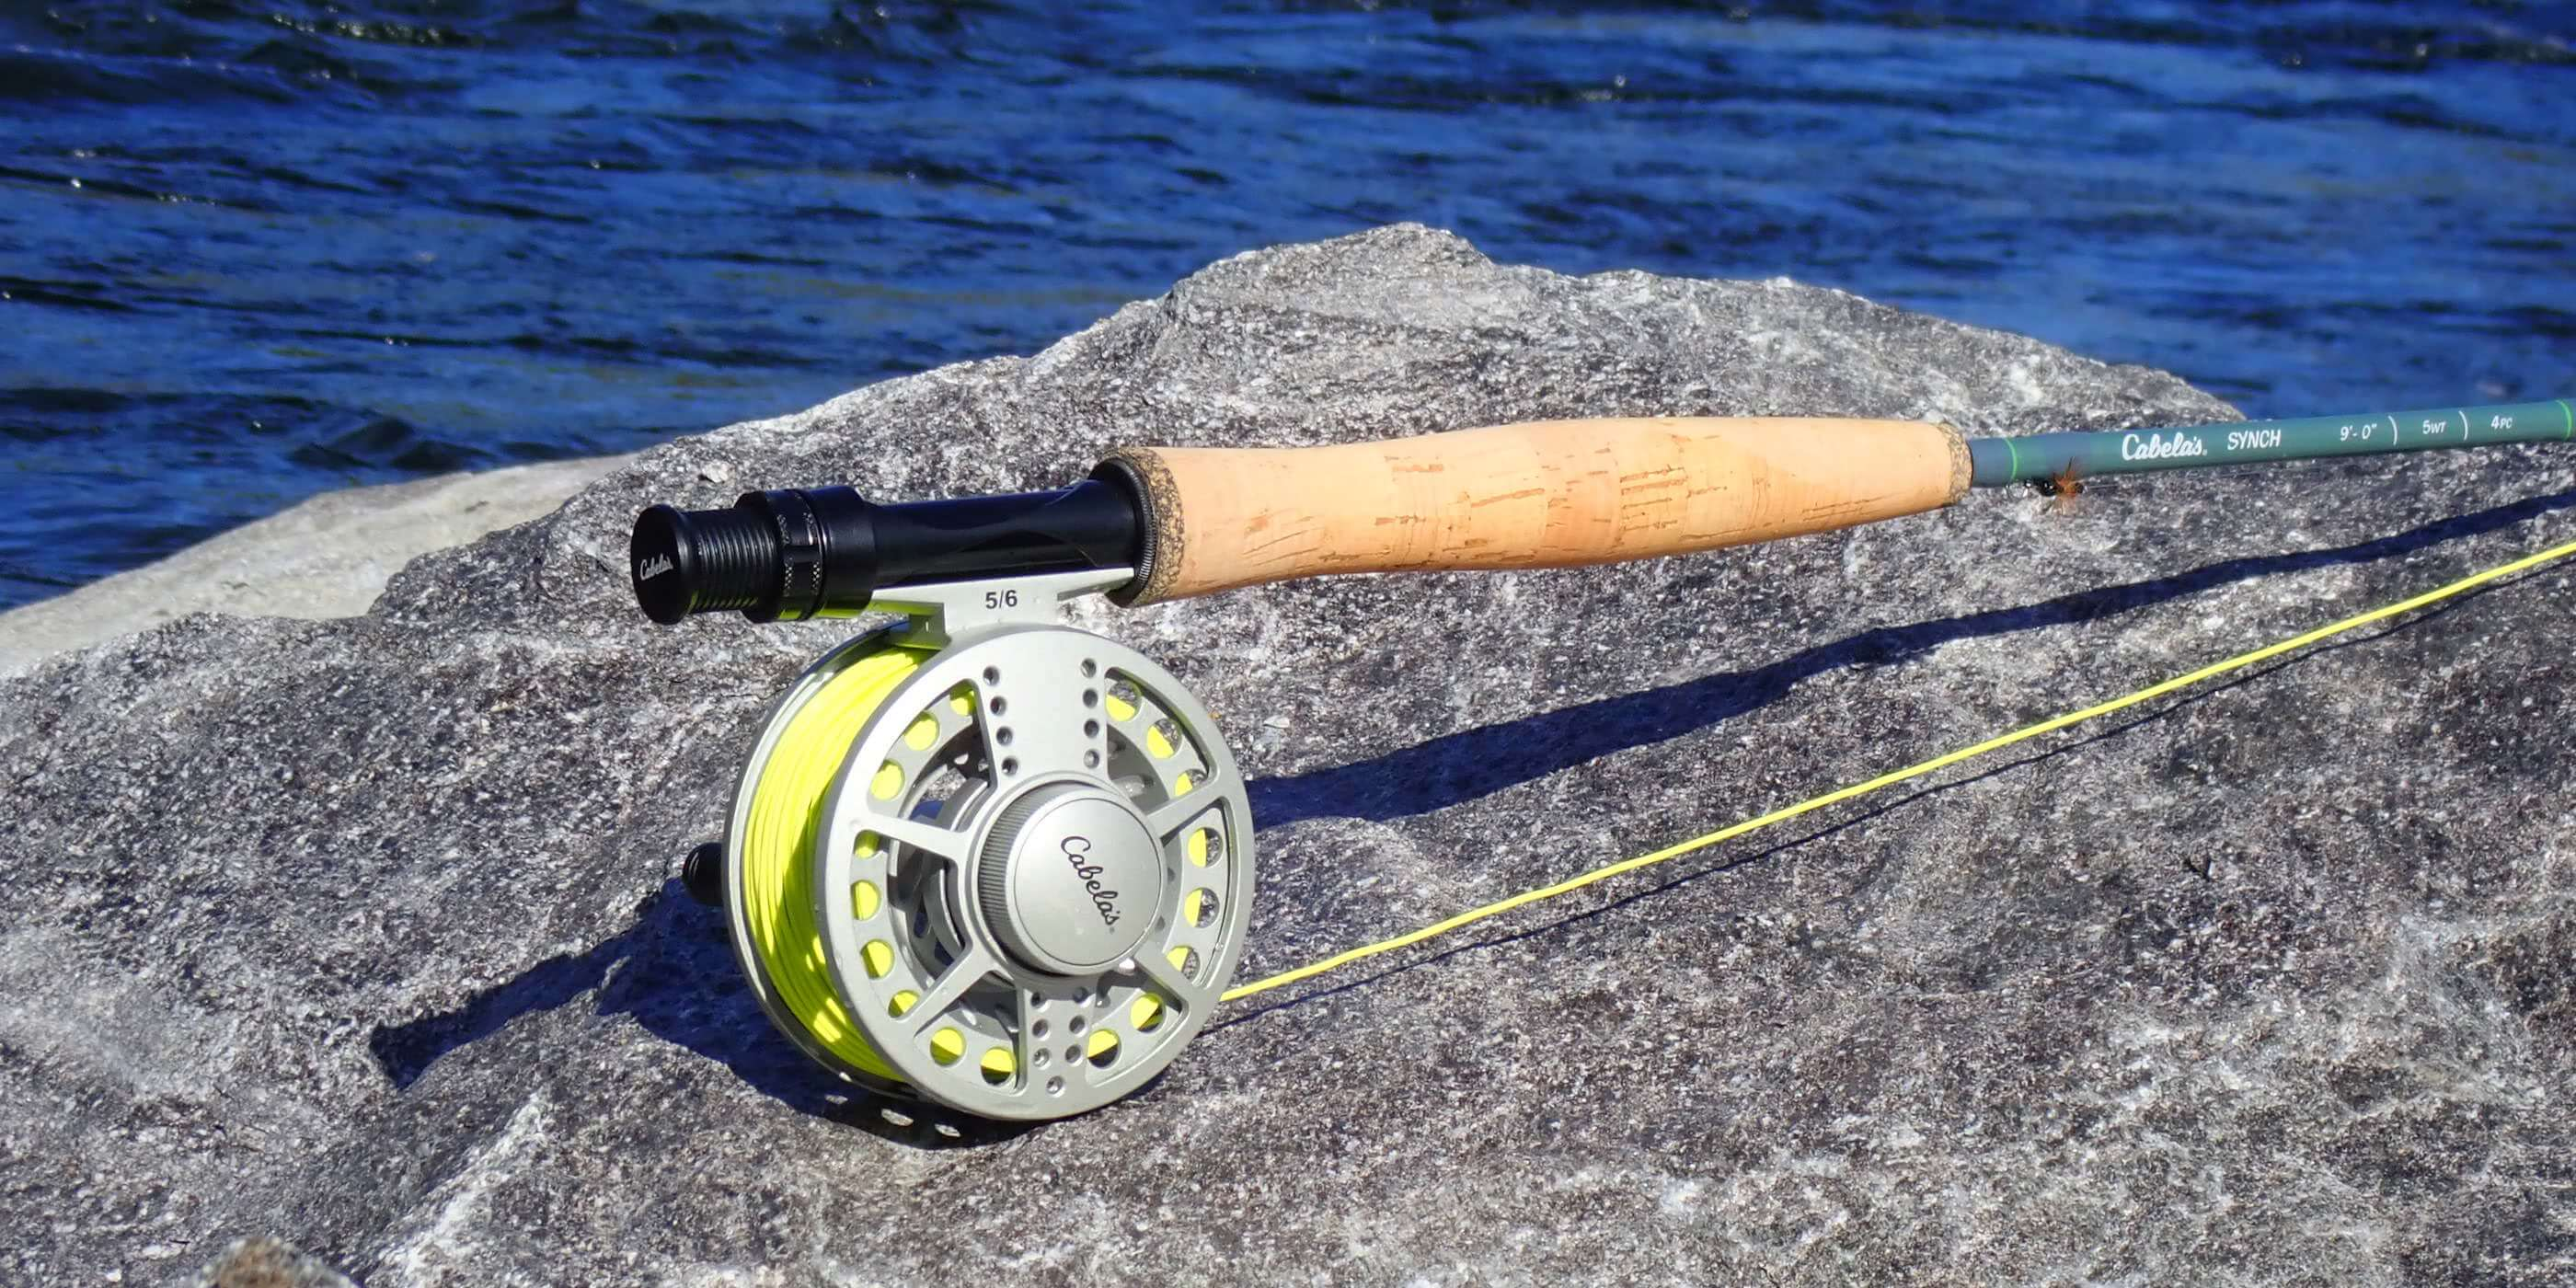 This image shows the Cabela's Synch Fly Combo.